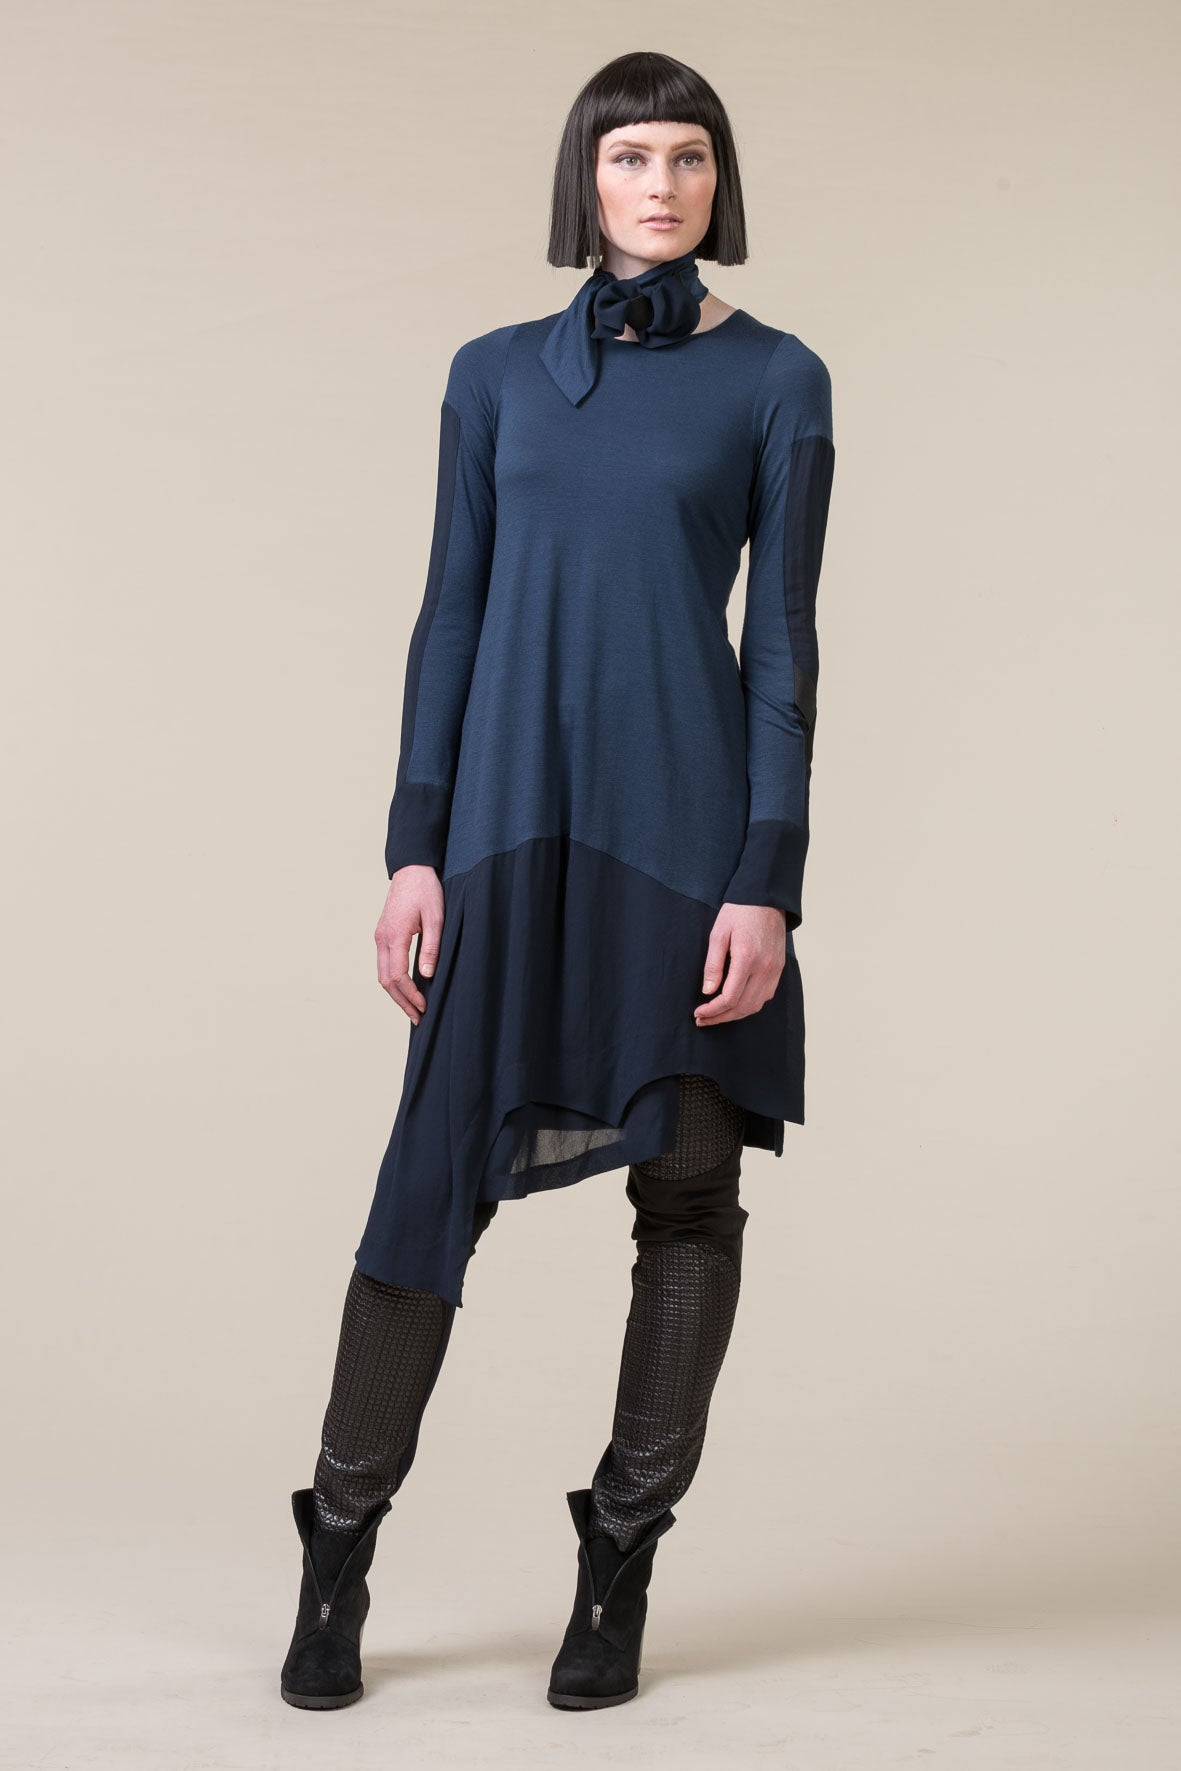 MILD-RED Marionette merino dress - navy